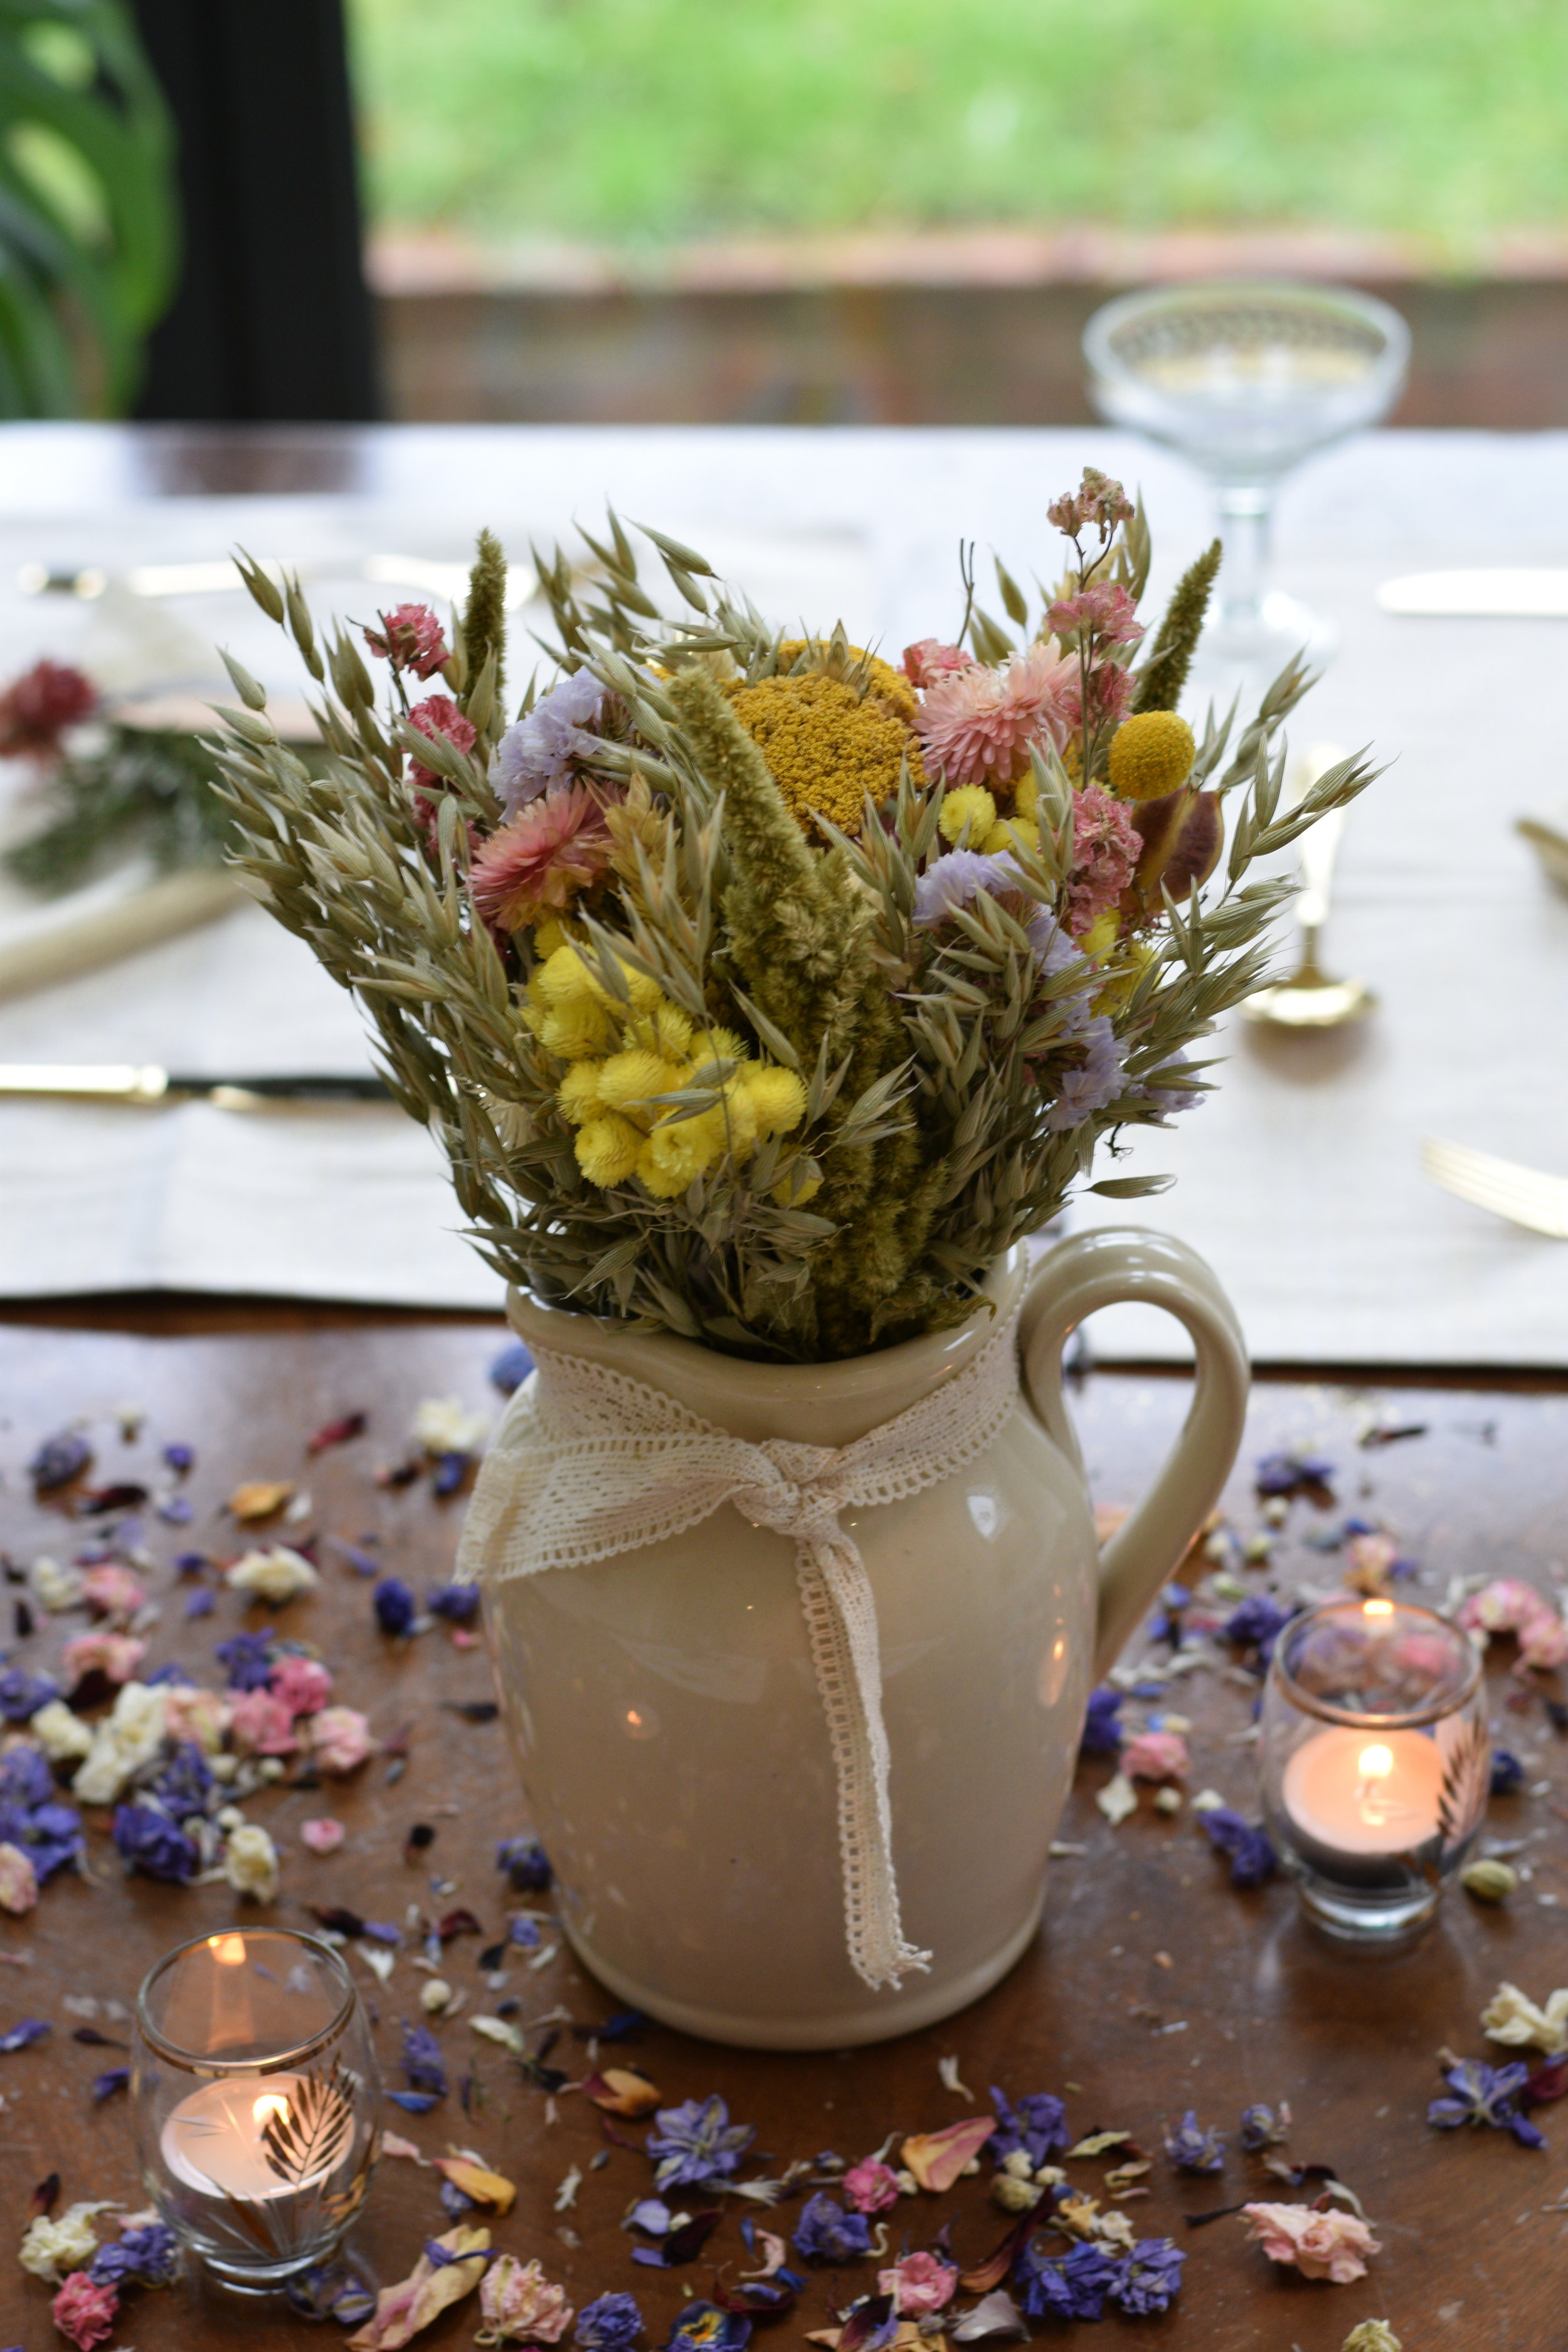 Table Arrangements - Tied and ready to pop into your own vases/jarsDecorating your wedding venue couldn't be easier!